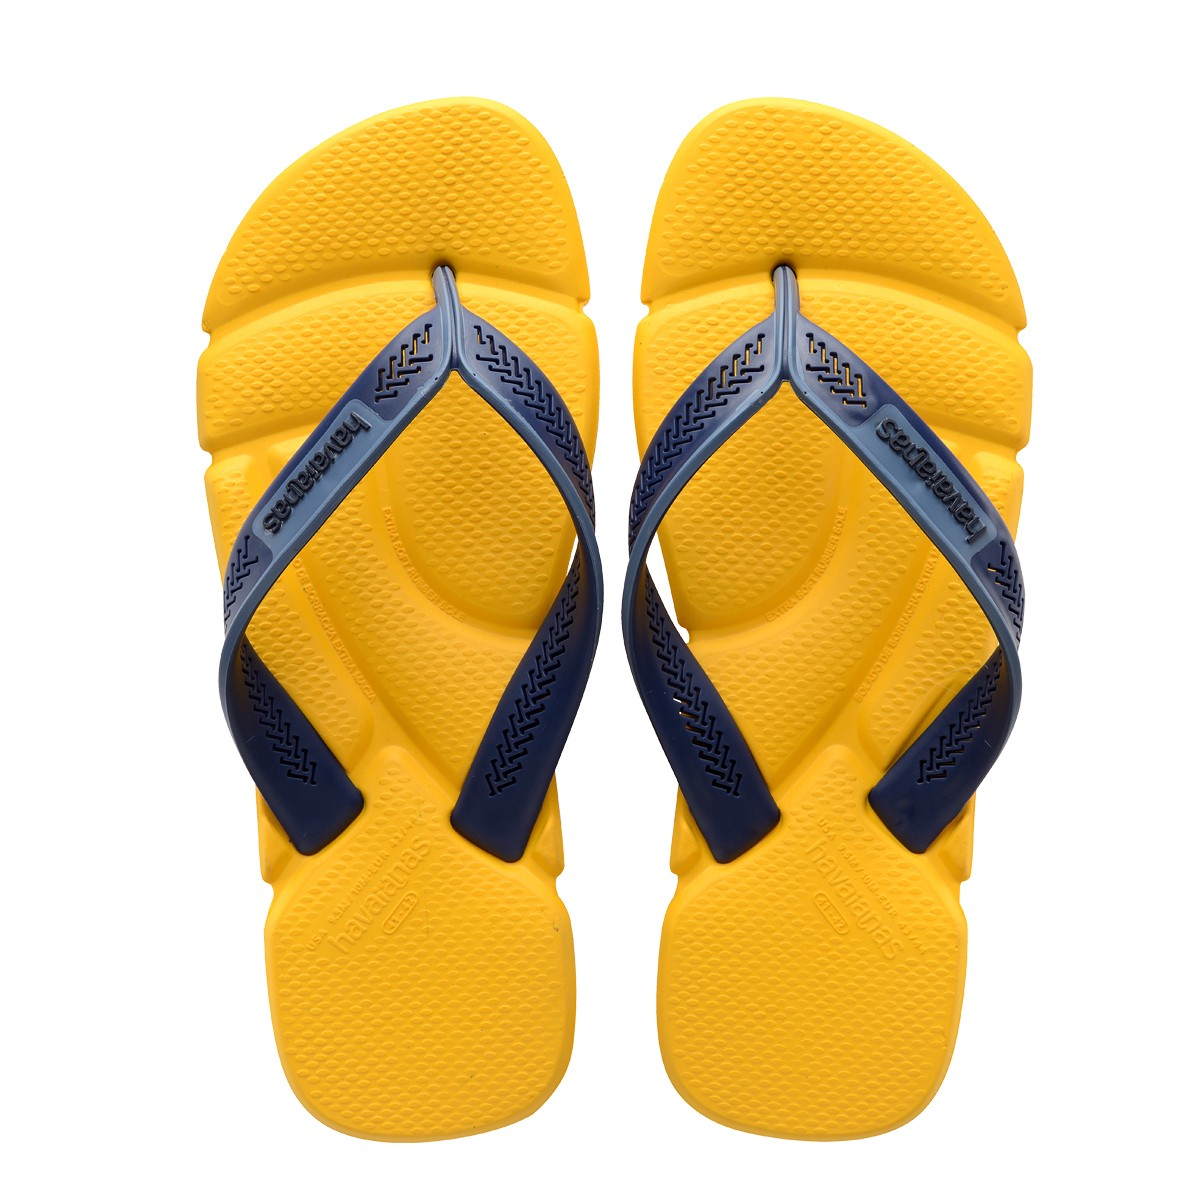 0870069bf235b4 POWER FLIP FLOPS BANANA YELLOW by Havaianas in 2018